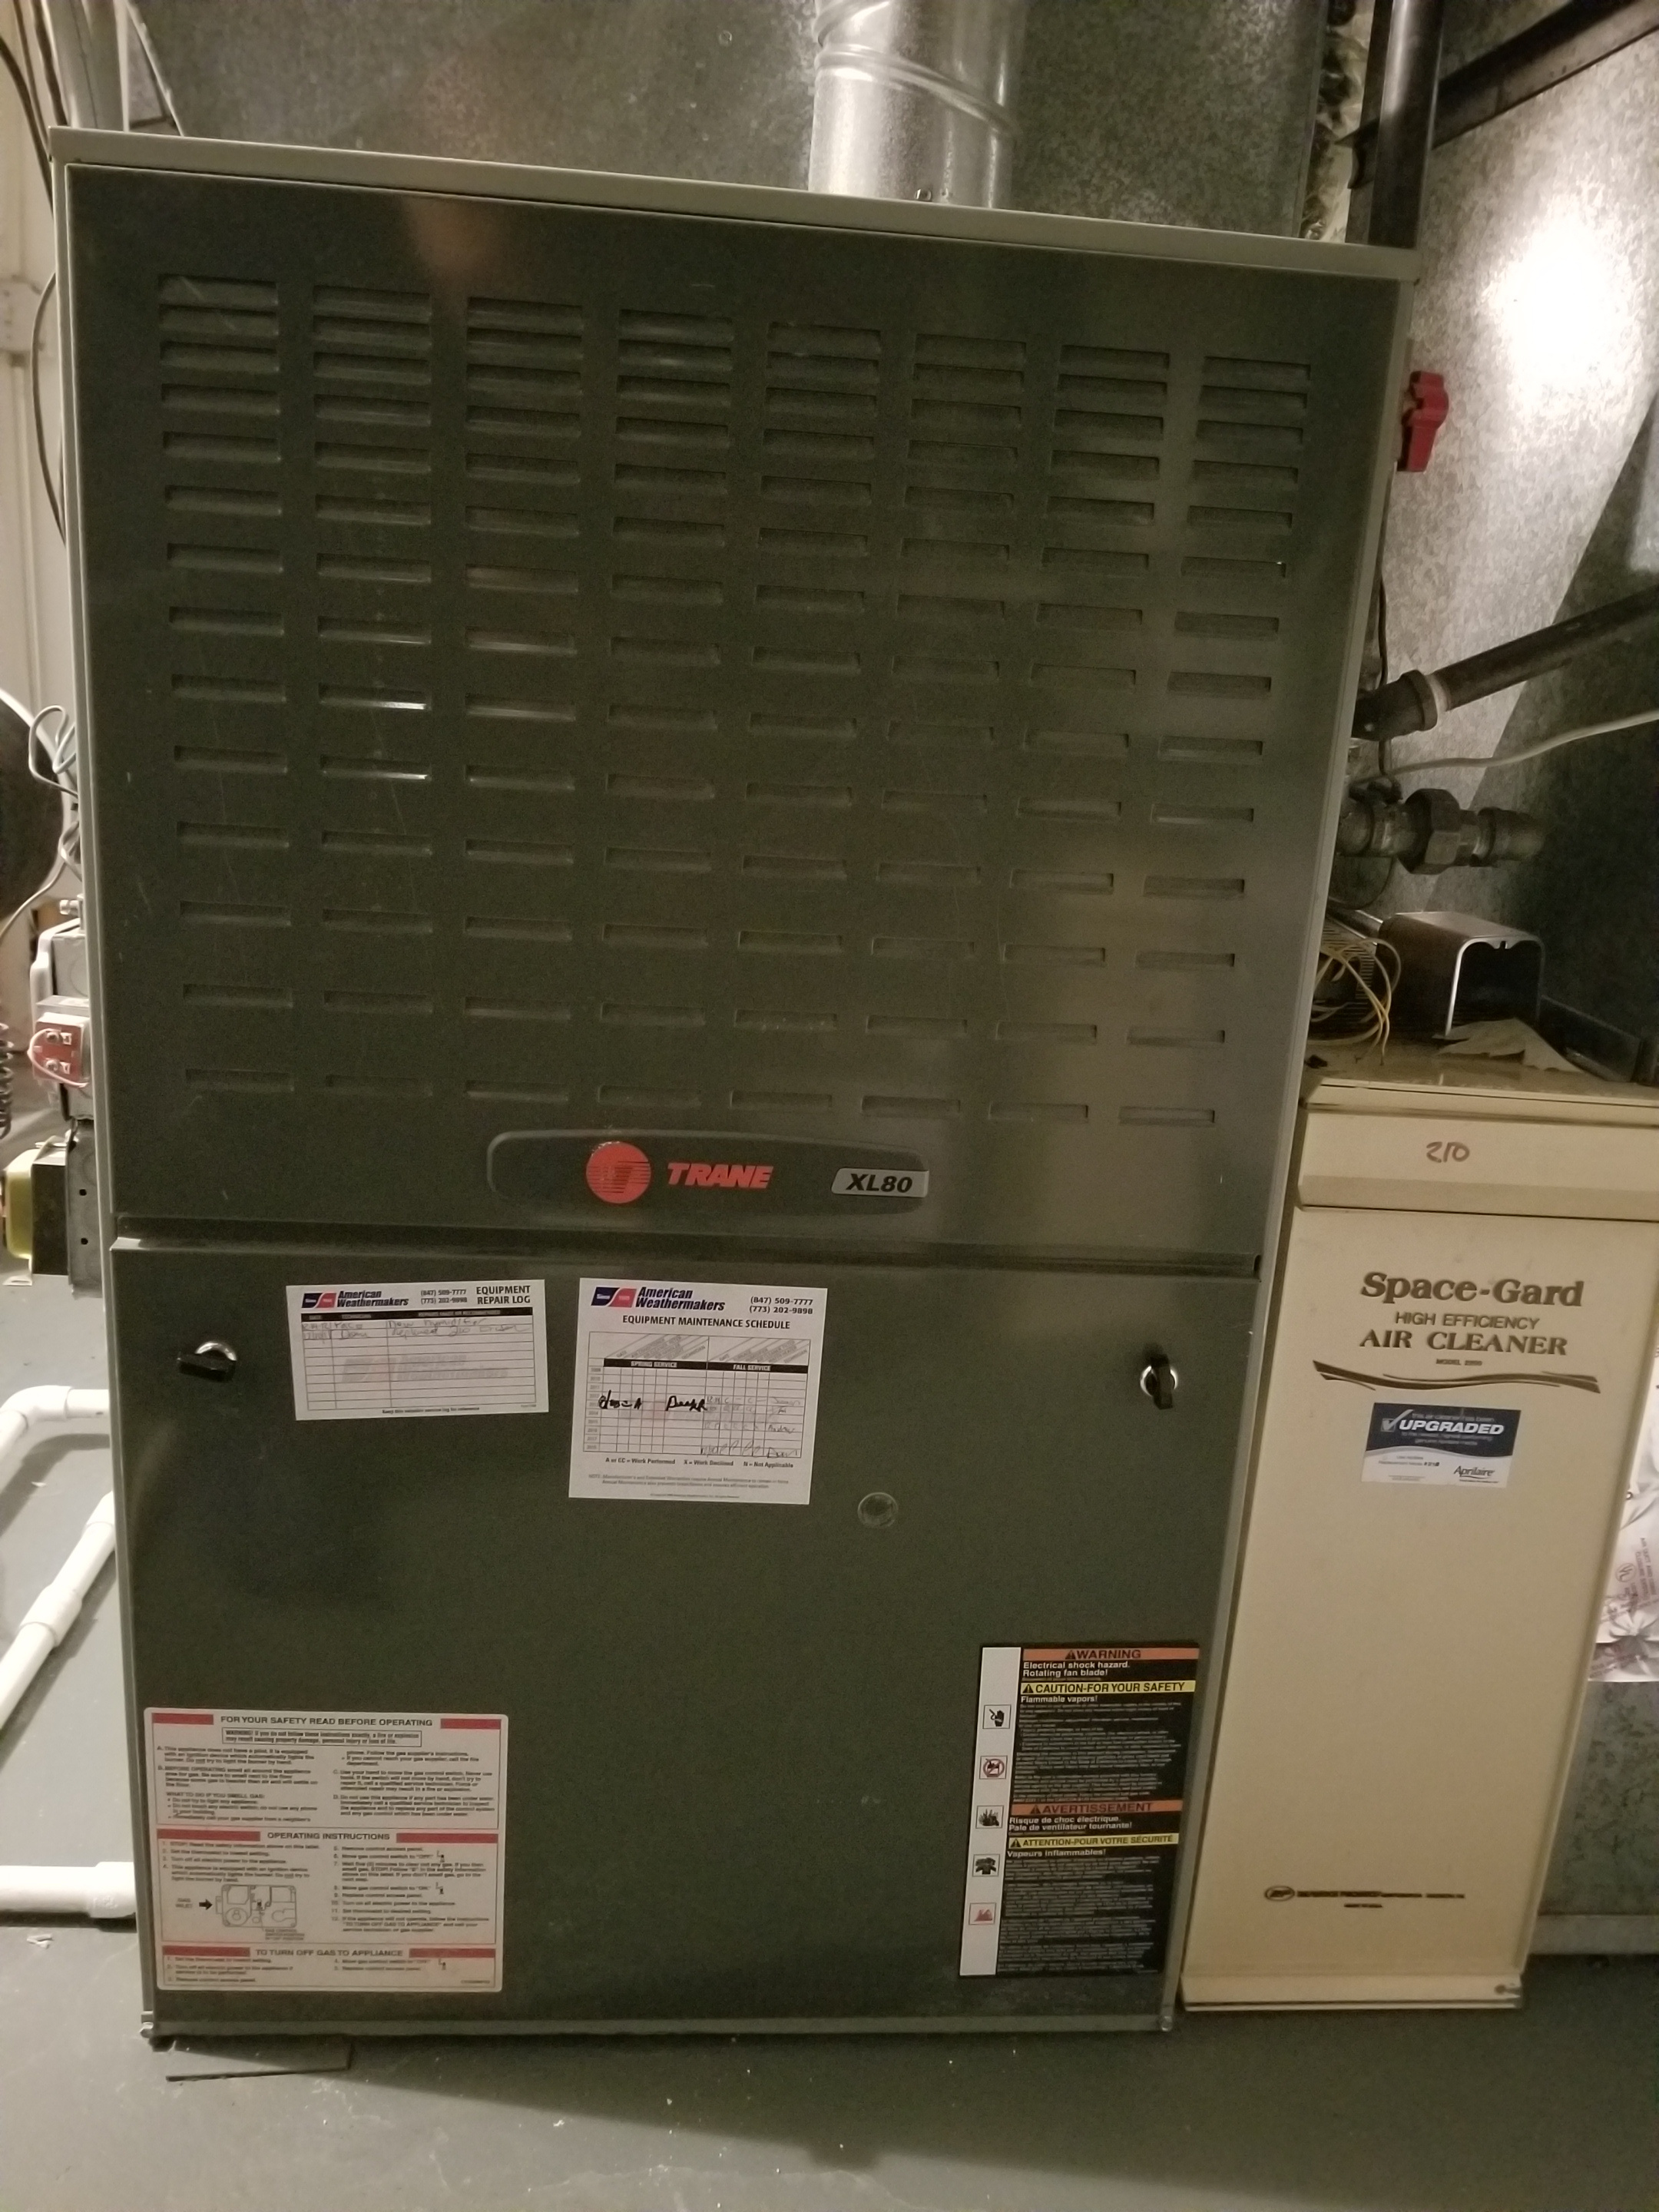 Performed annual maintenance on the Trane furnace and Aprilaire air filter, made adjustments to improve the overall efficiency and life expectancy of the equipment